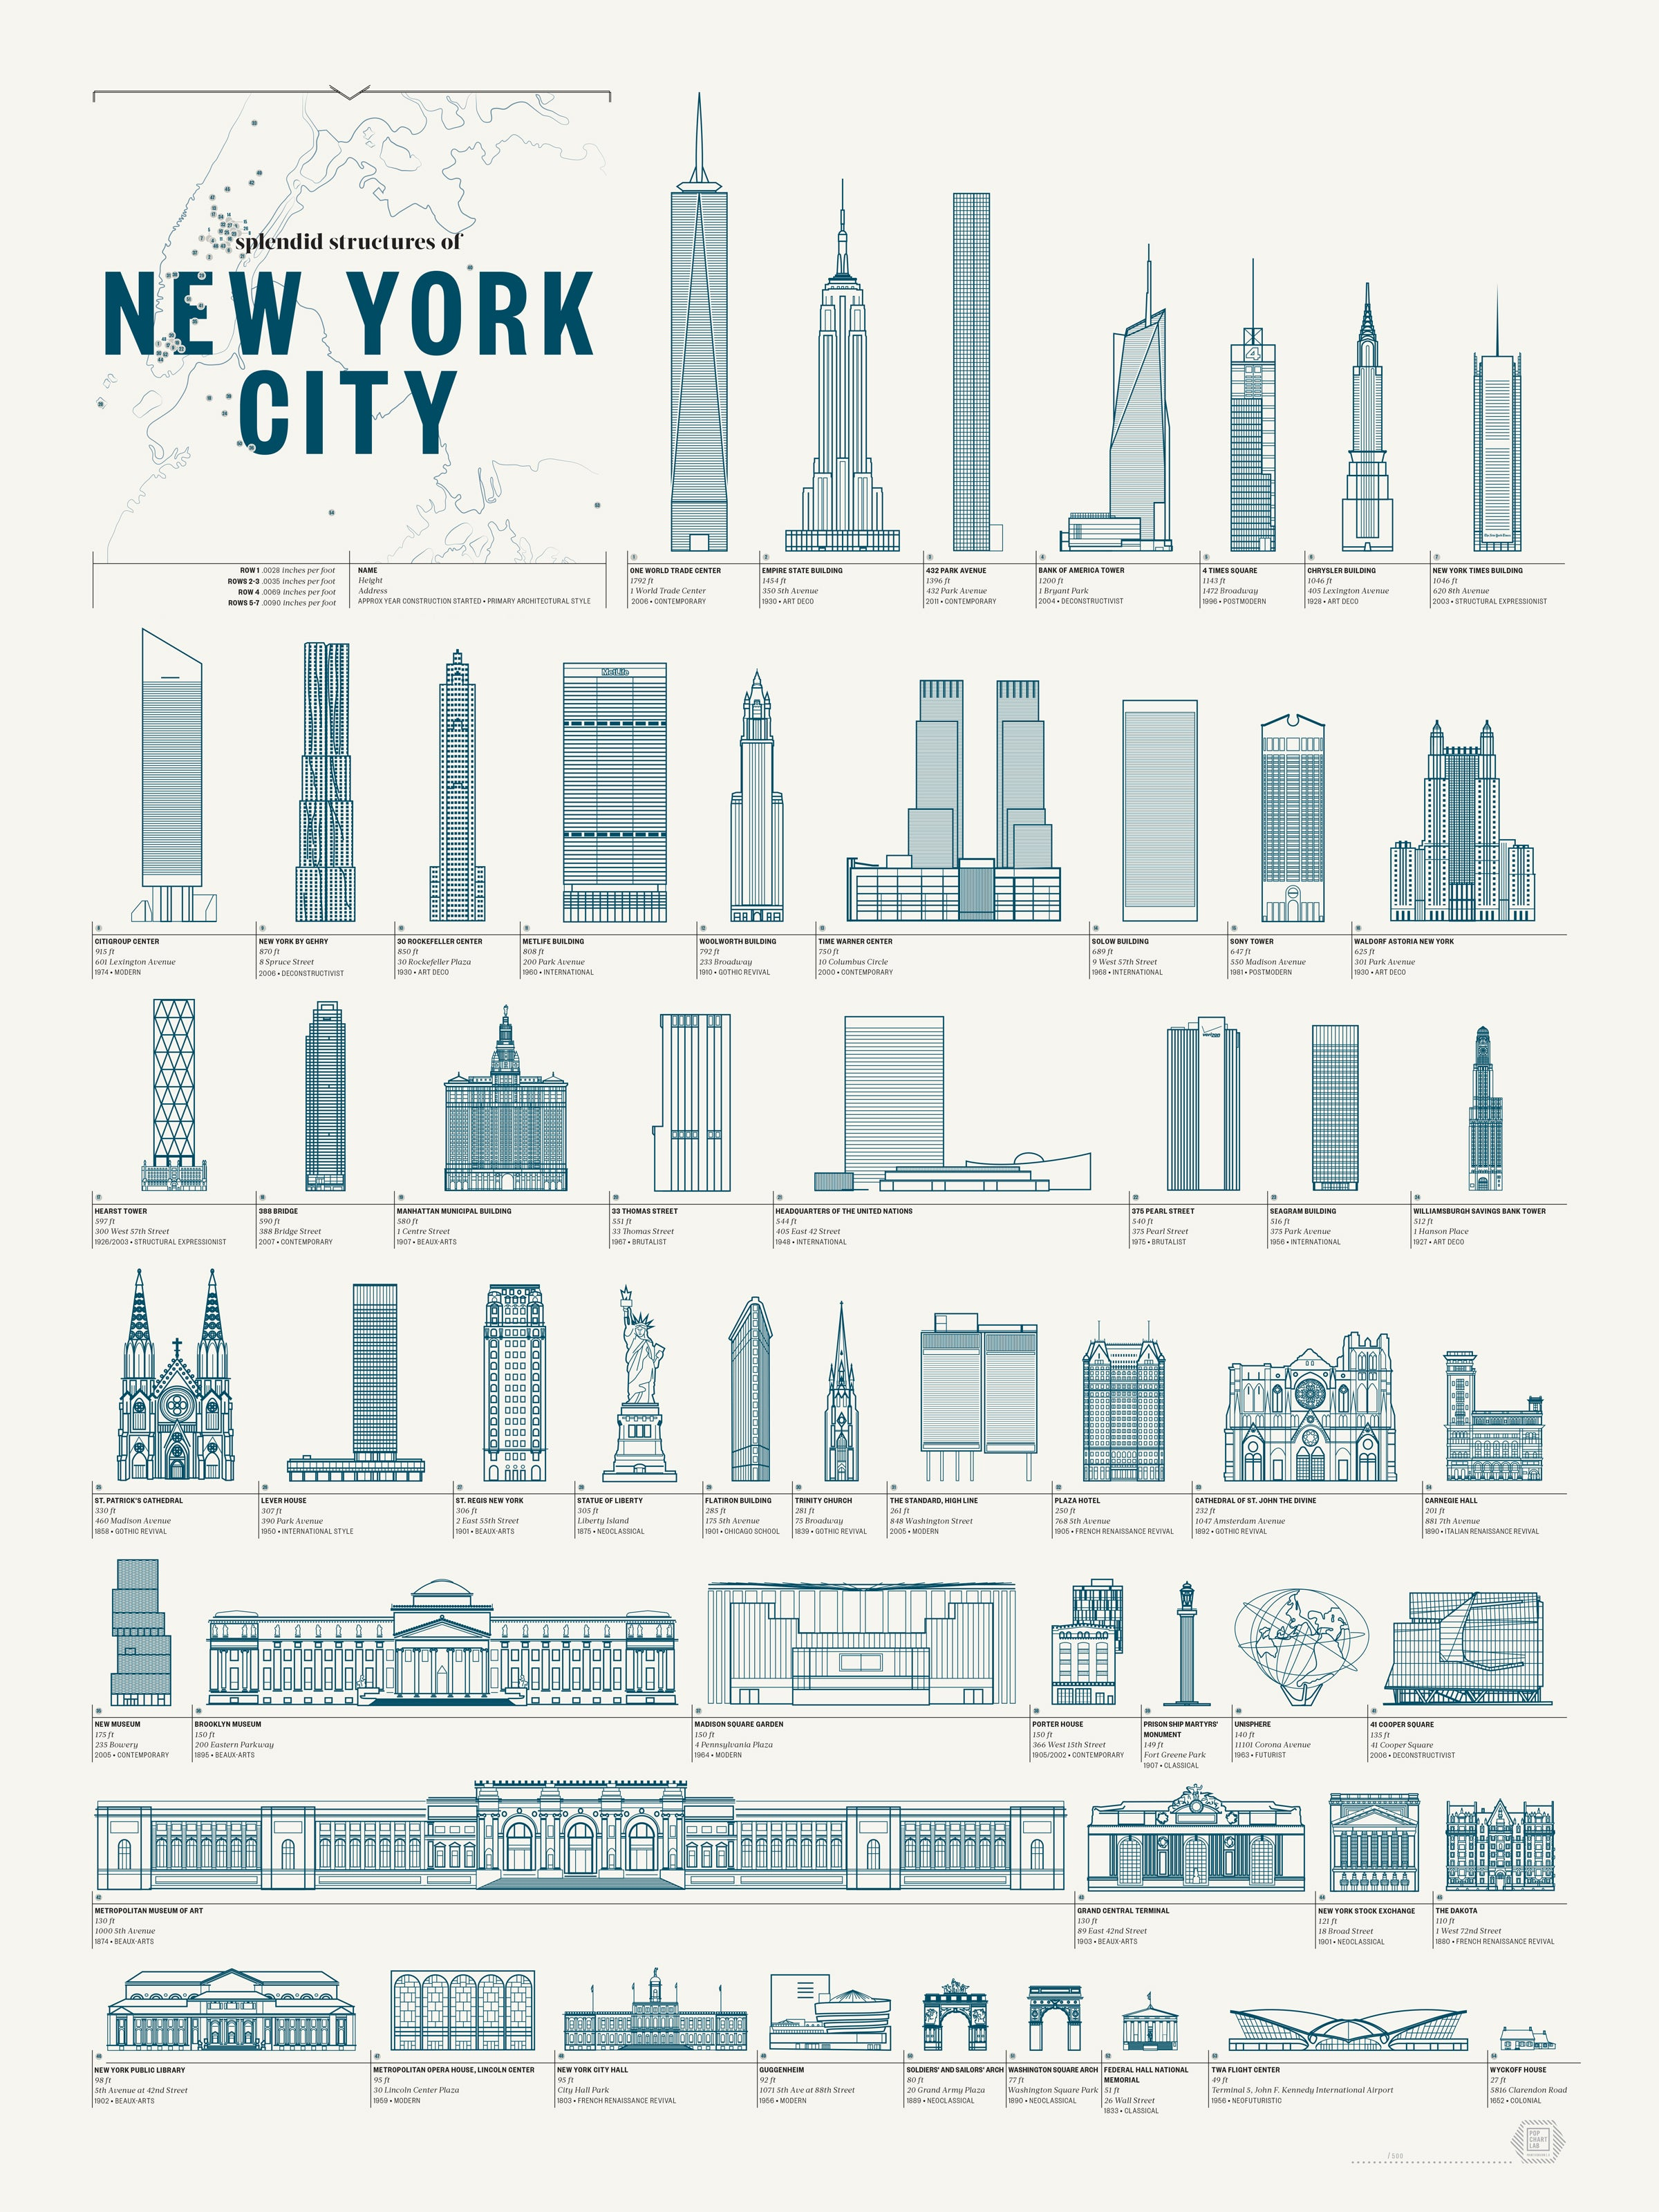 Take a Tour of New York City's Best Architecture in One Image